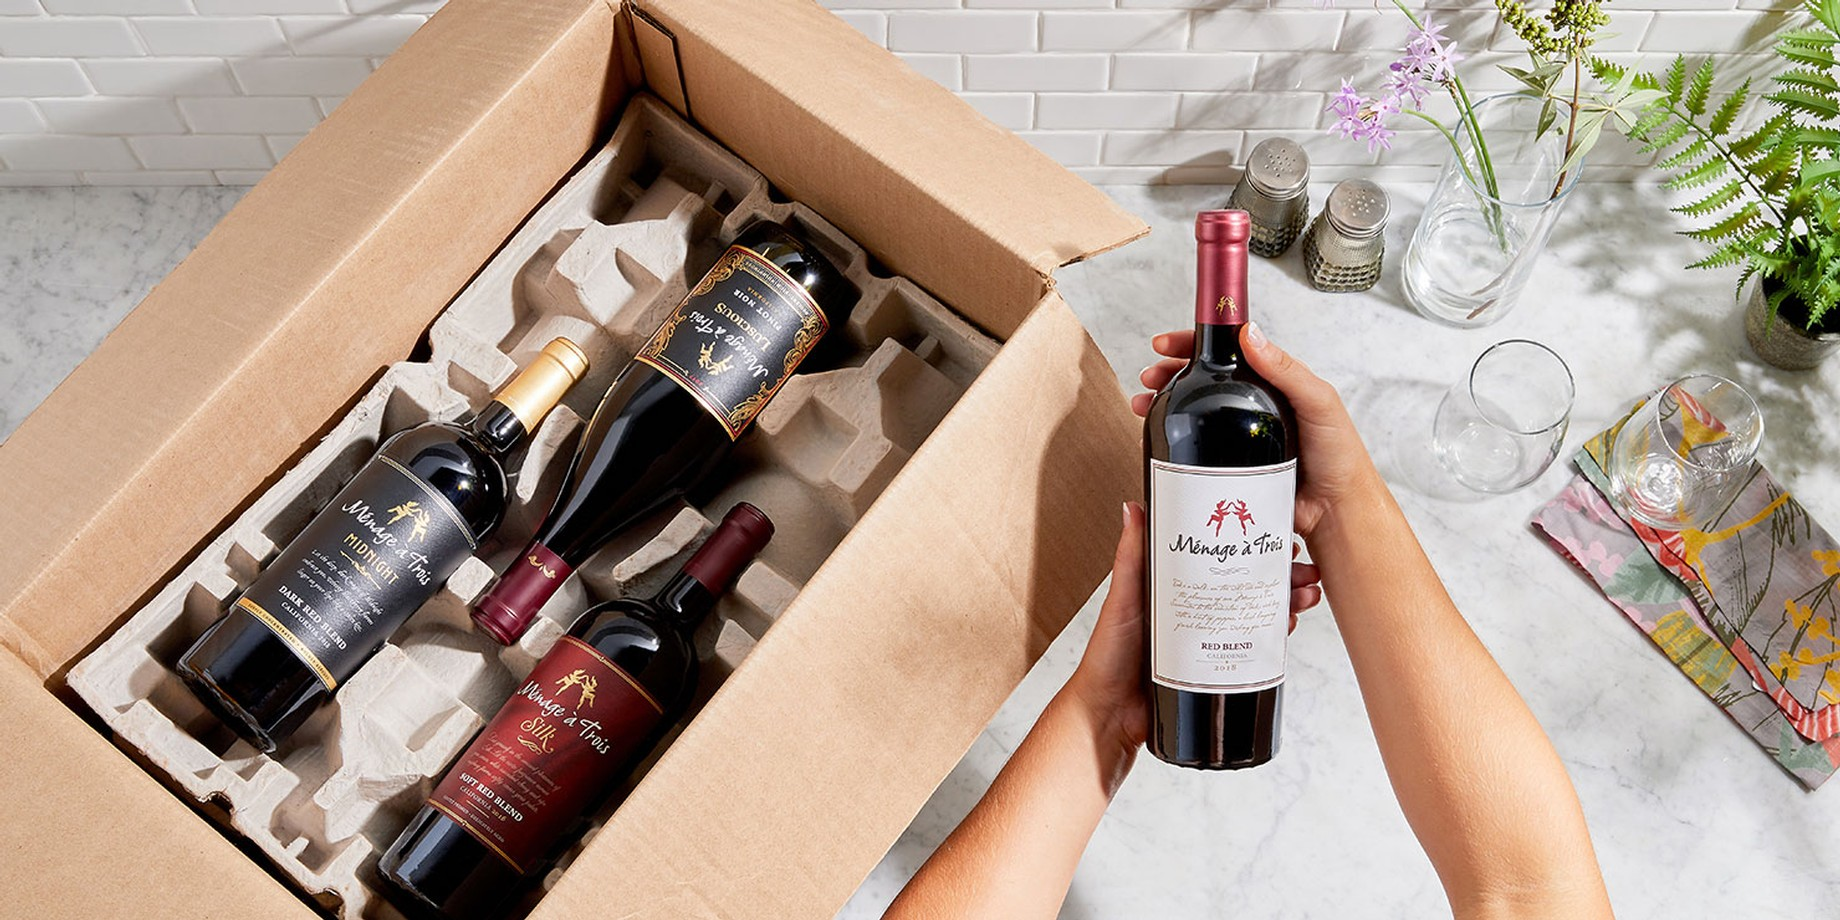 Wines shipped to you in time for the holidays